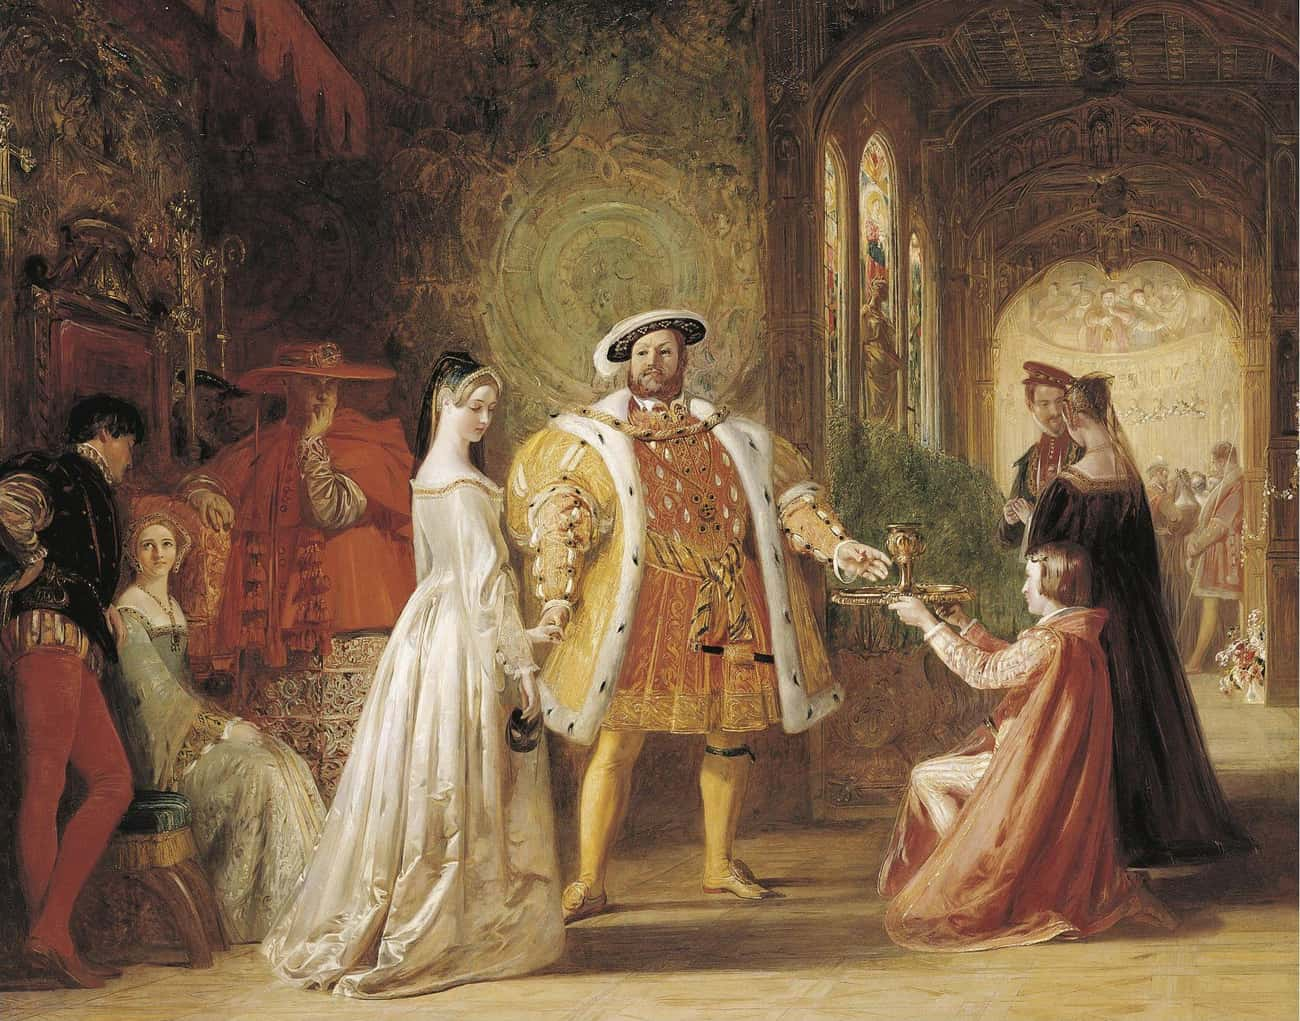 Mary Was Henry VIII's Lover Before Being Displaced By Her Sister